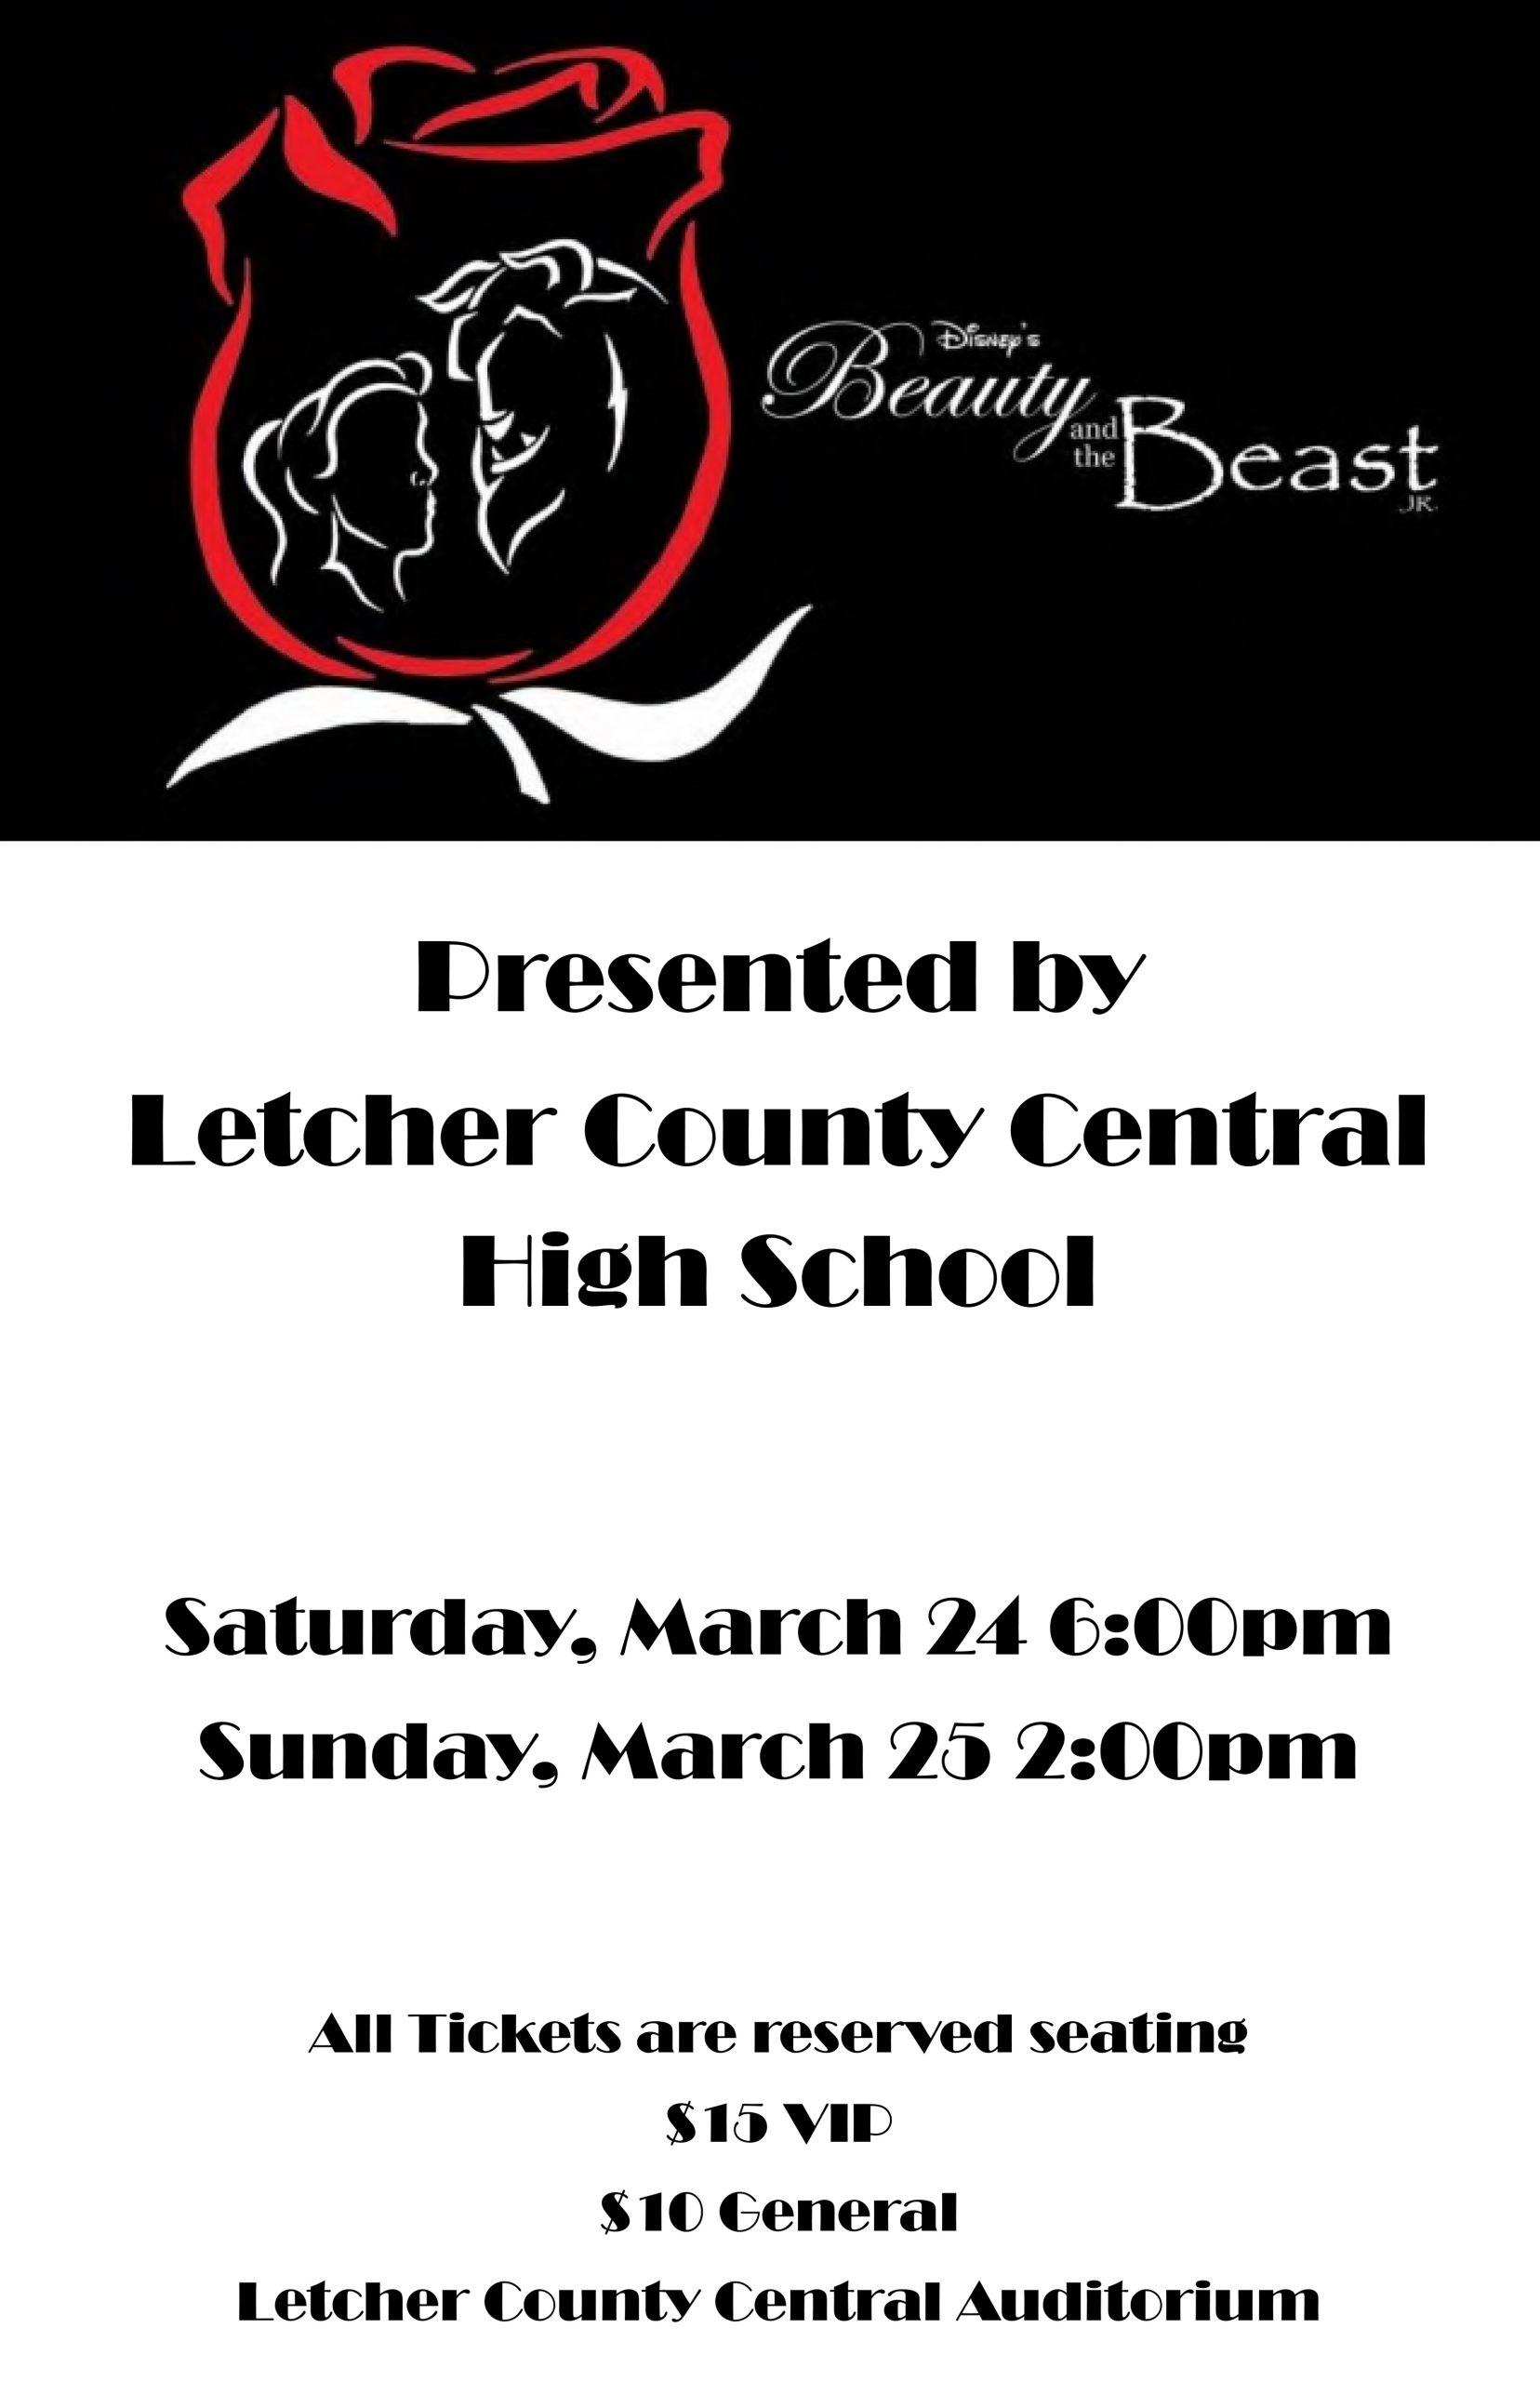 Letcher County Central Drama presents Beauty and the Beast March 24-25